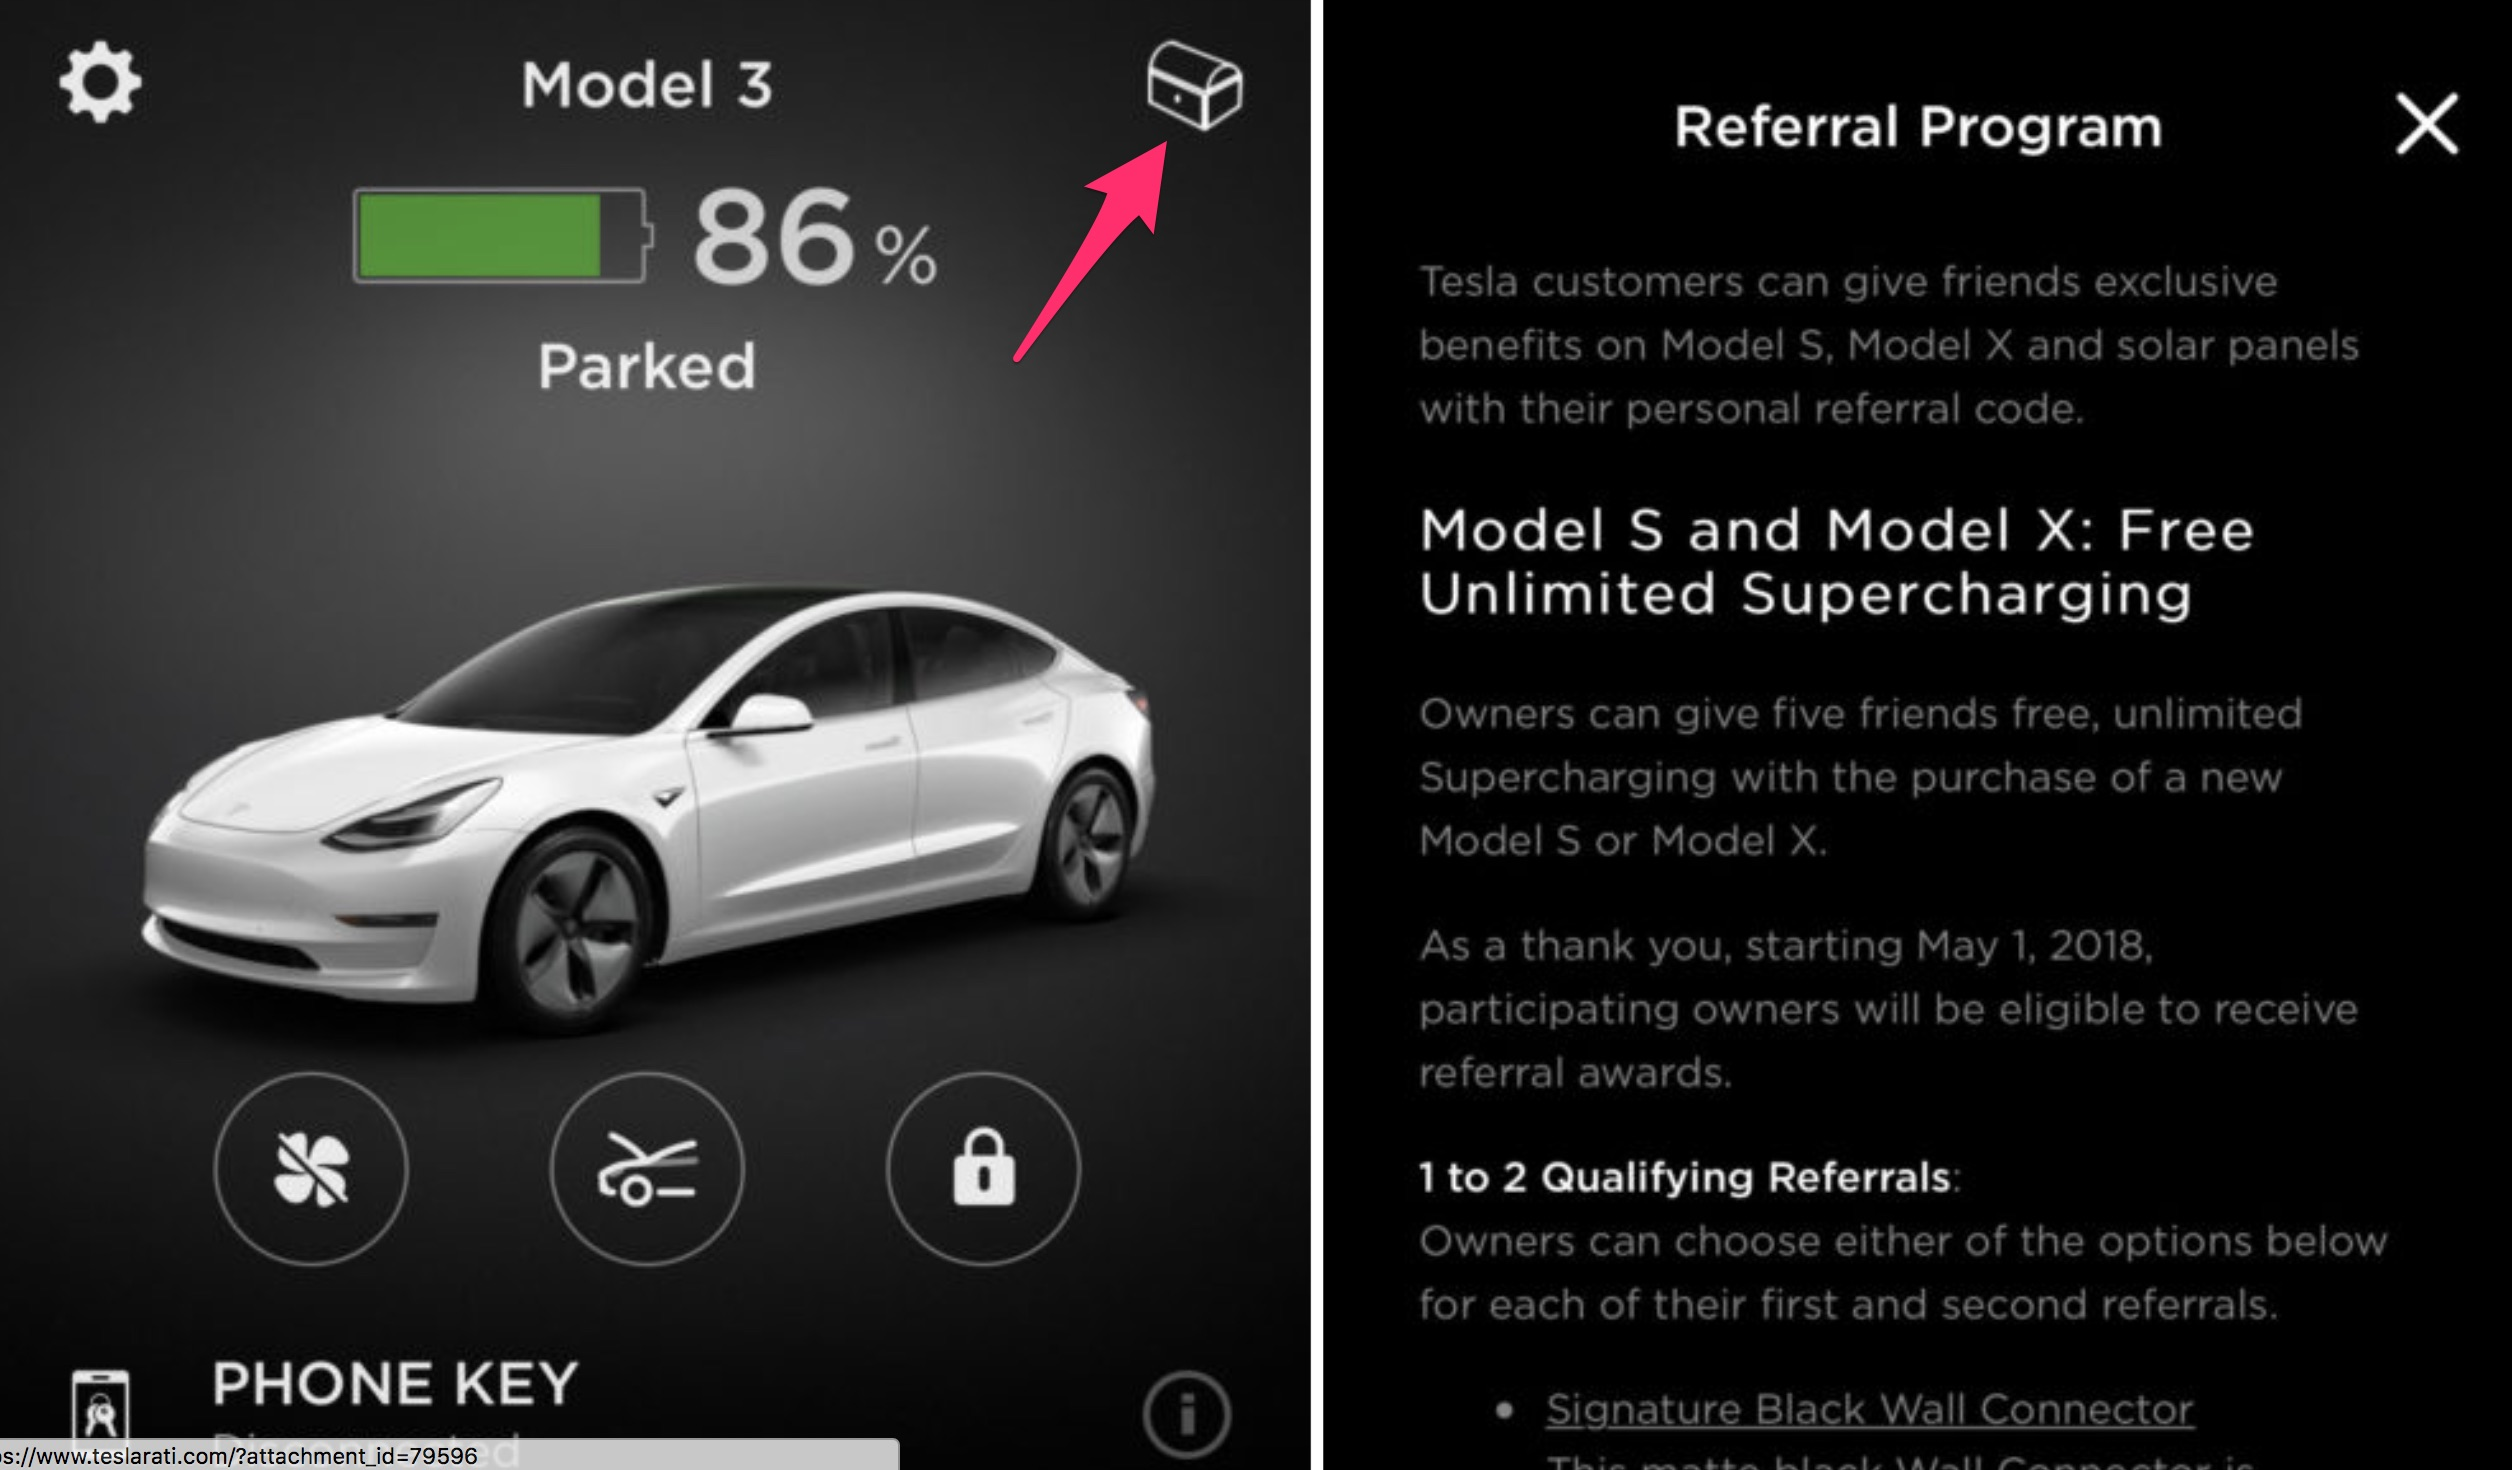 tesla-model-3-referral-program-app